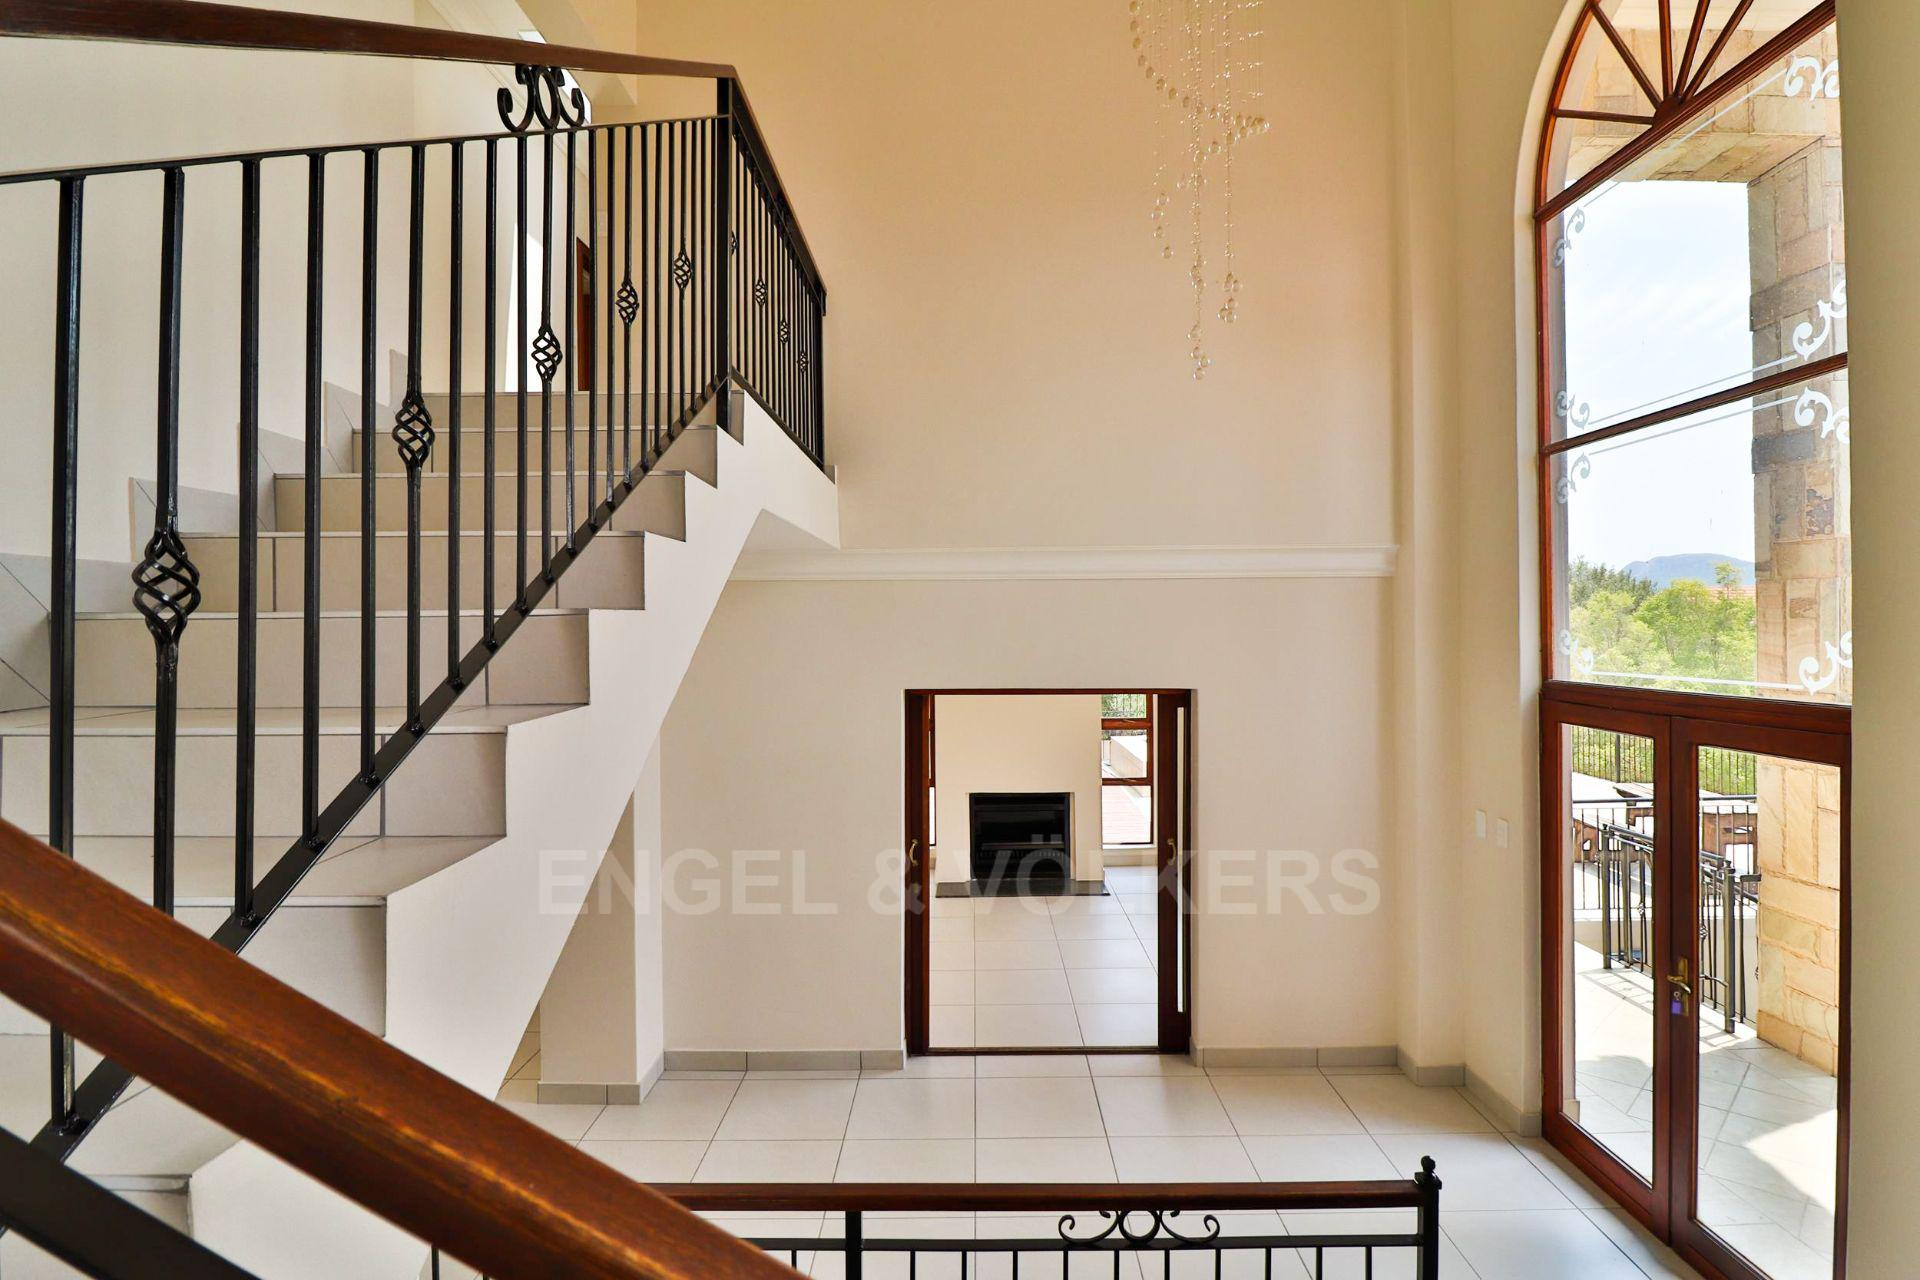 House in Xanadu Eco Park - View down the stairs